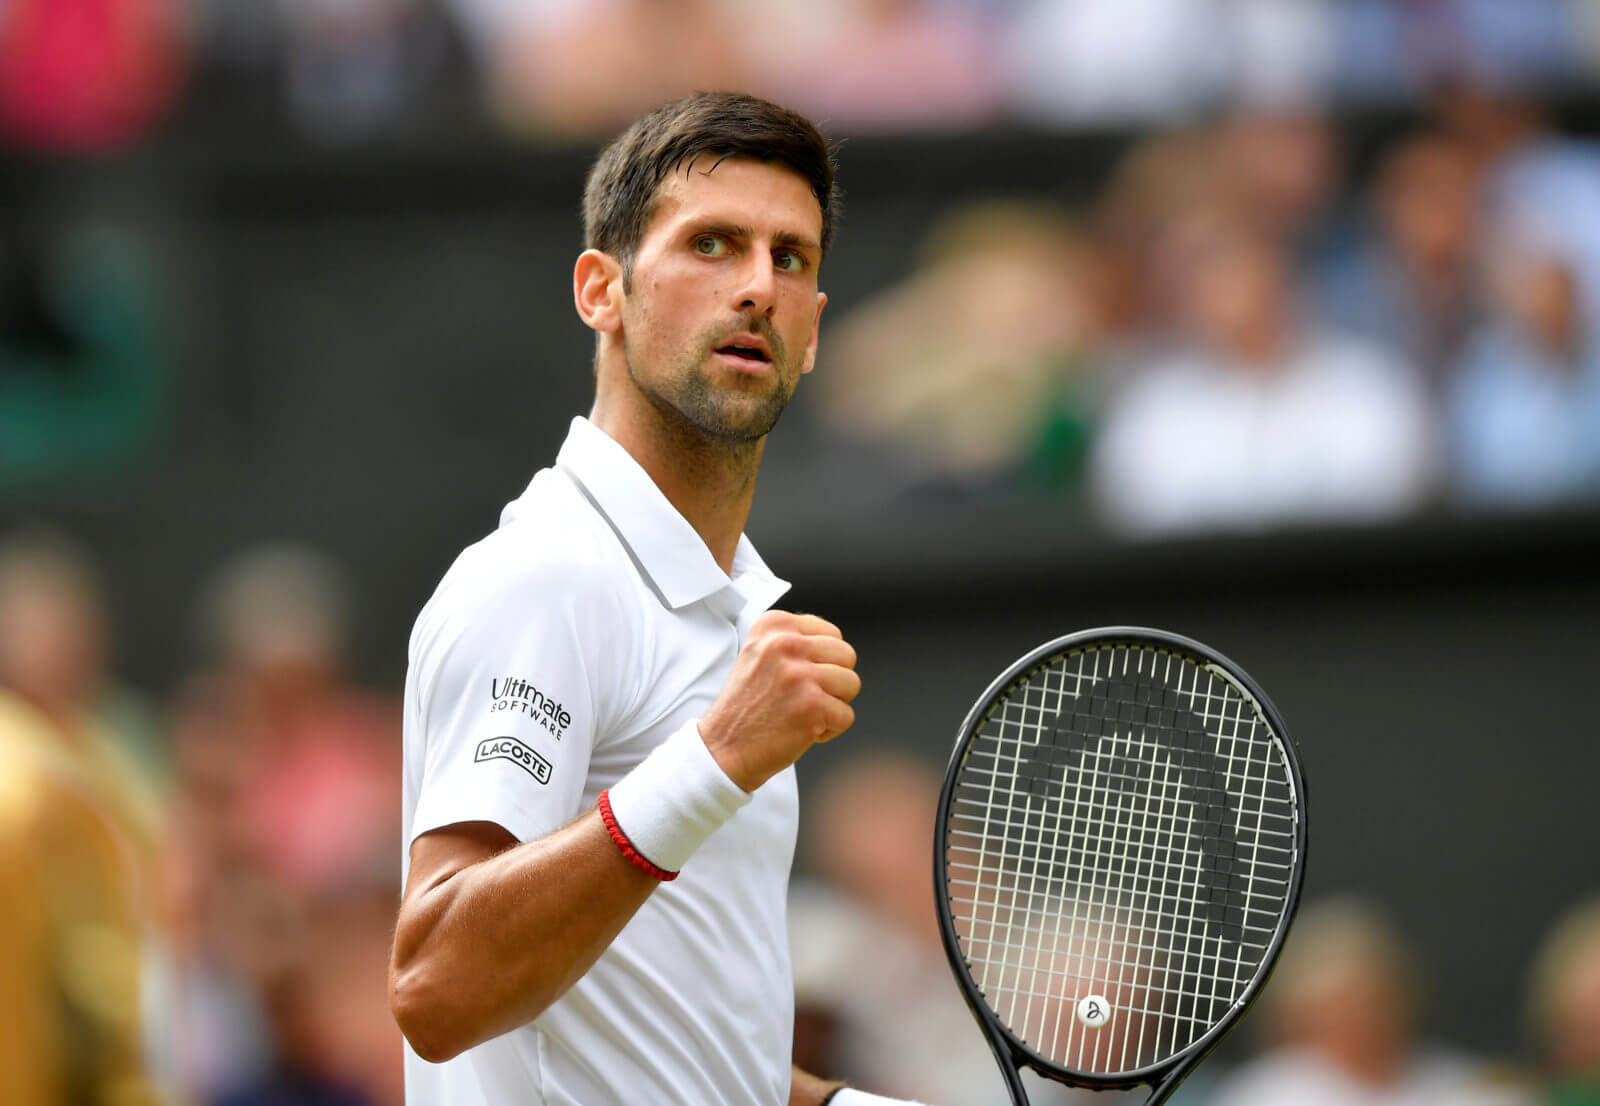 Happy to confirm that I will participate at the Cincinnati Open and US Open: Novak Djokovic